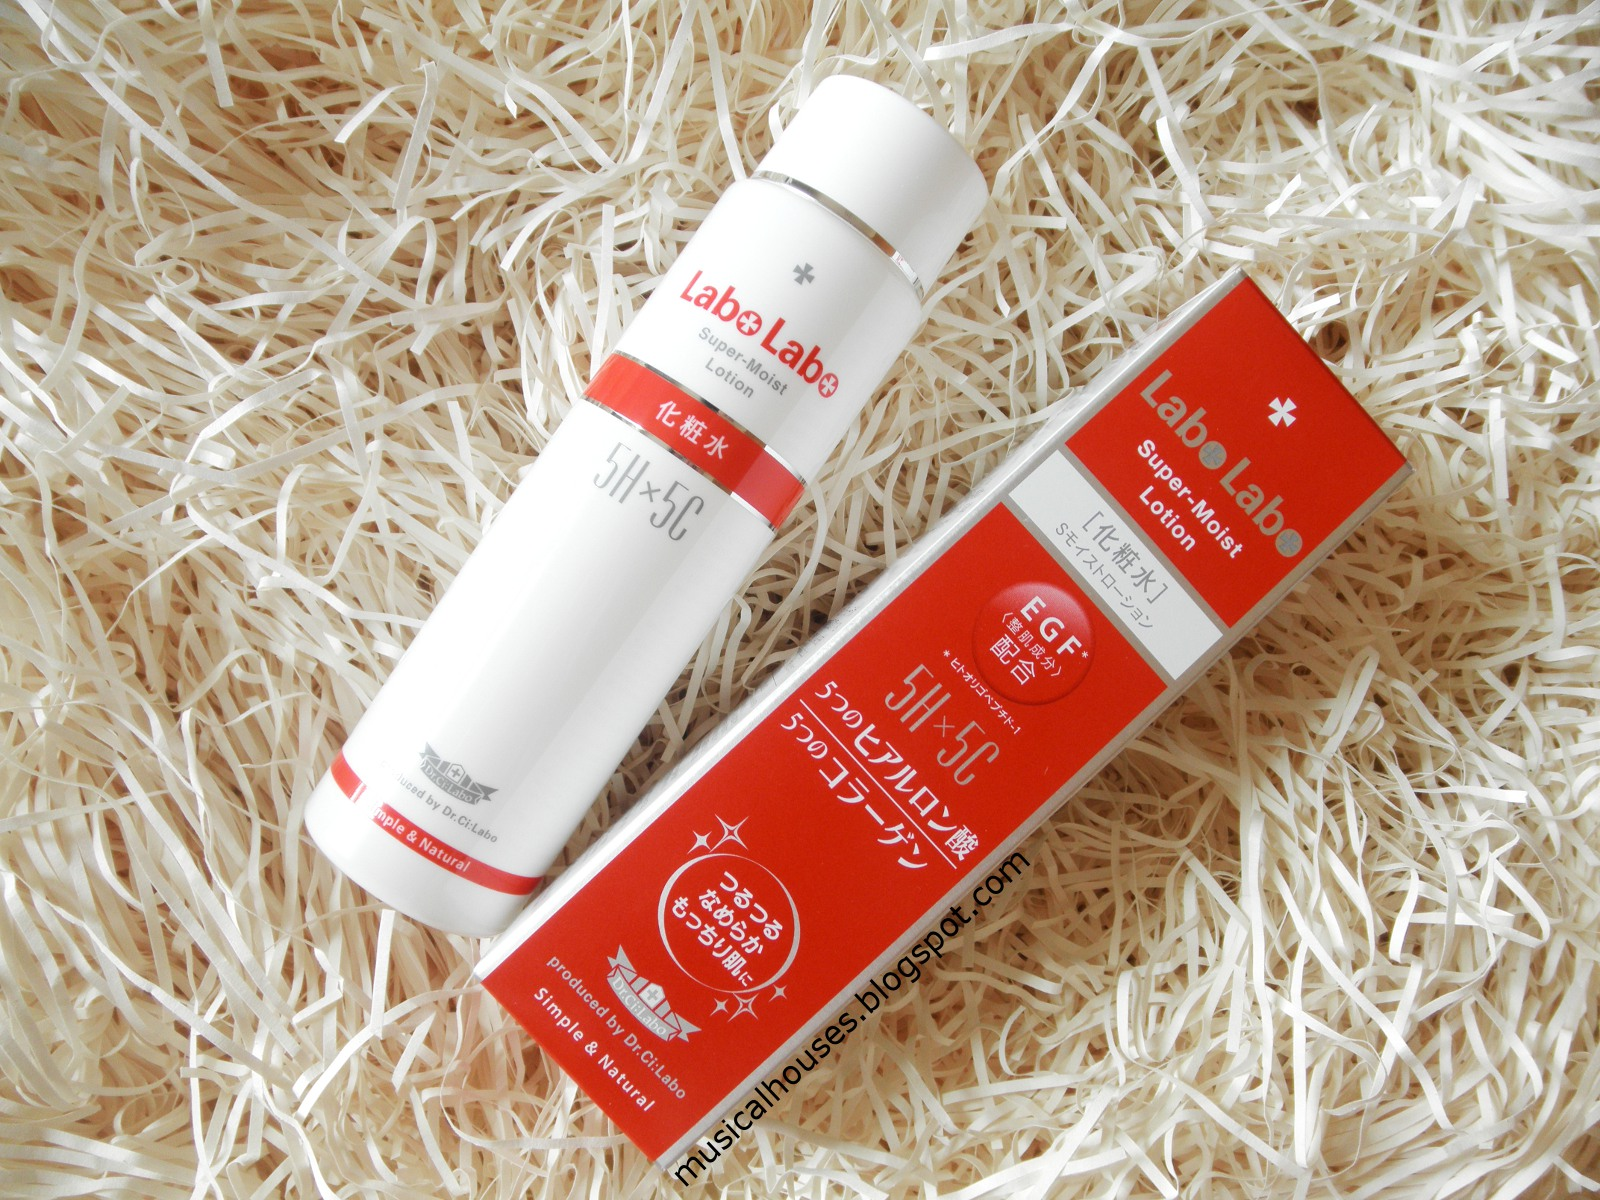 Dr Ci Labo Labo Labo Super Moist 5H5C Lotion